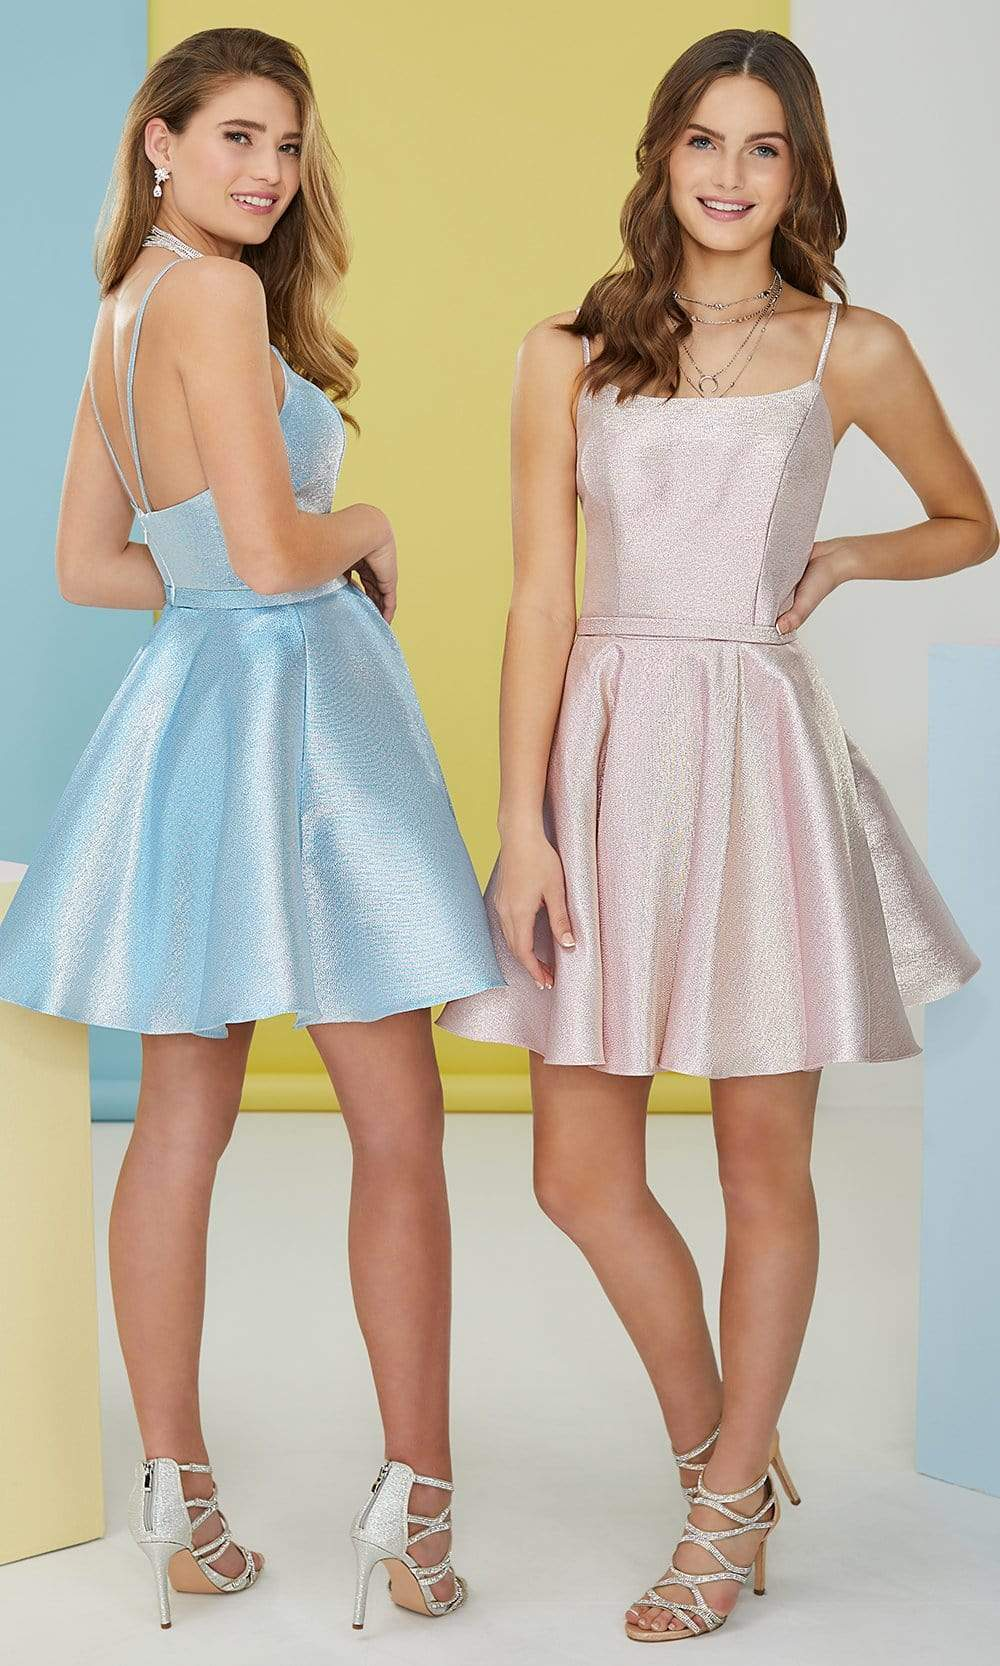 Tiffany Homecoming - 27298 Metallic Scoop A-Line Dress from Tiffany Homecoming